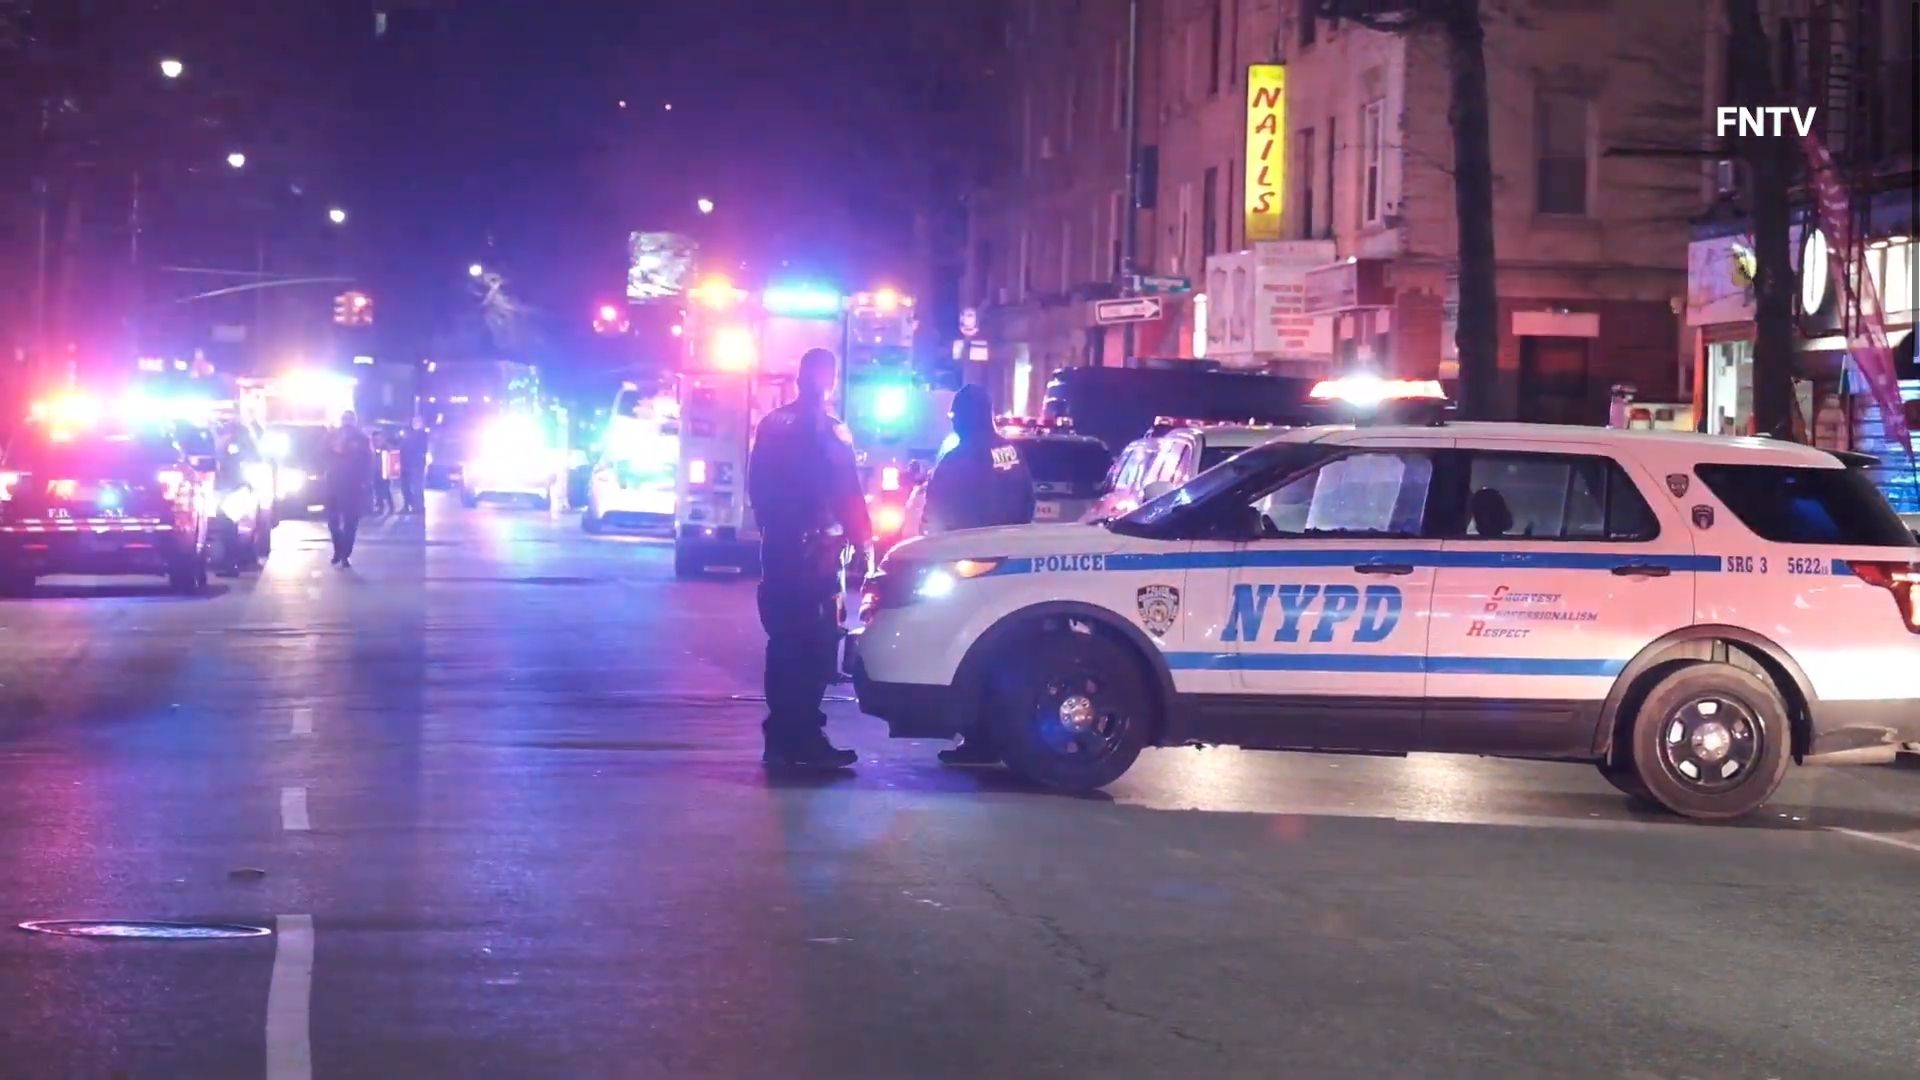 Police and emergency units on the scene in Brooklyn after a gunman opened fire on cops, injuring two officers Sunday night, March 7, 2021, according to the NYPD. (PIX11 News via FNTV)